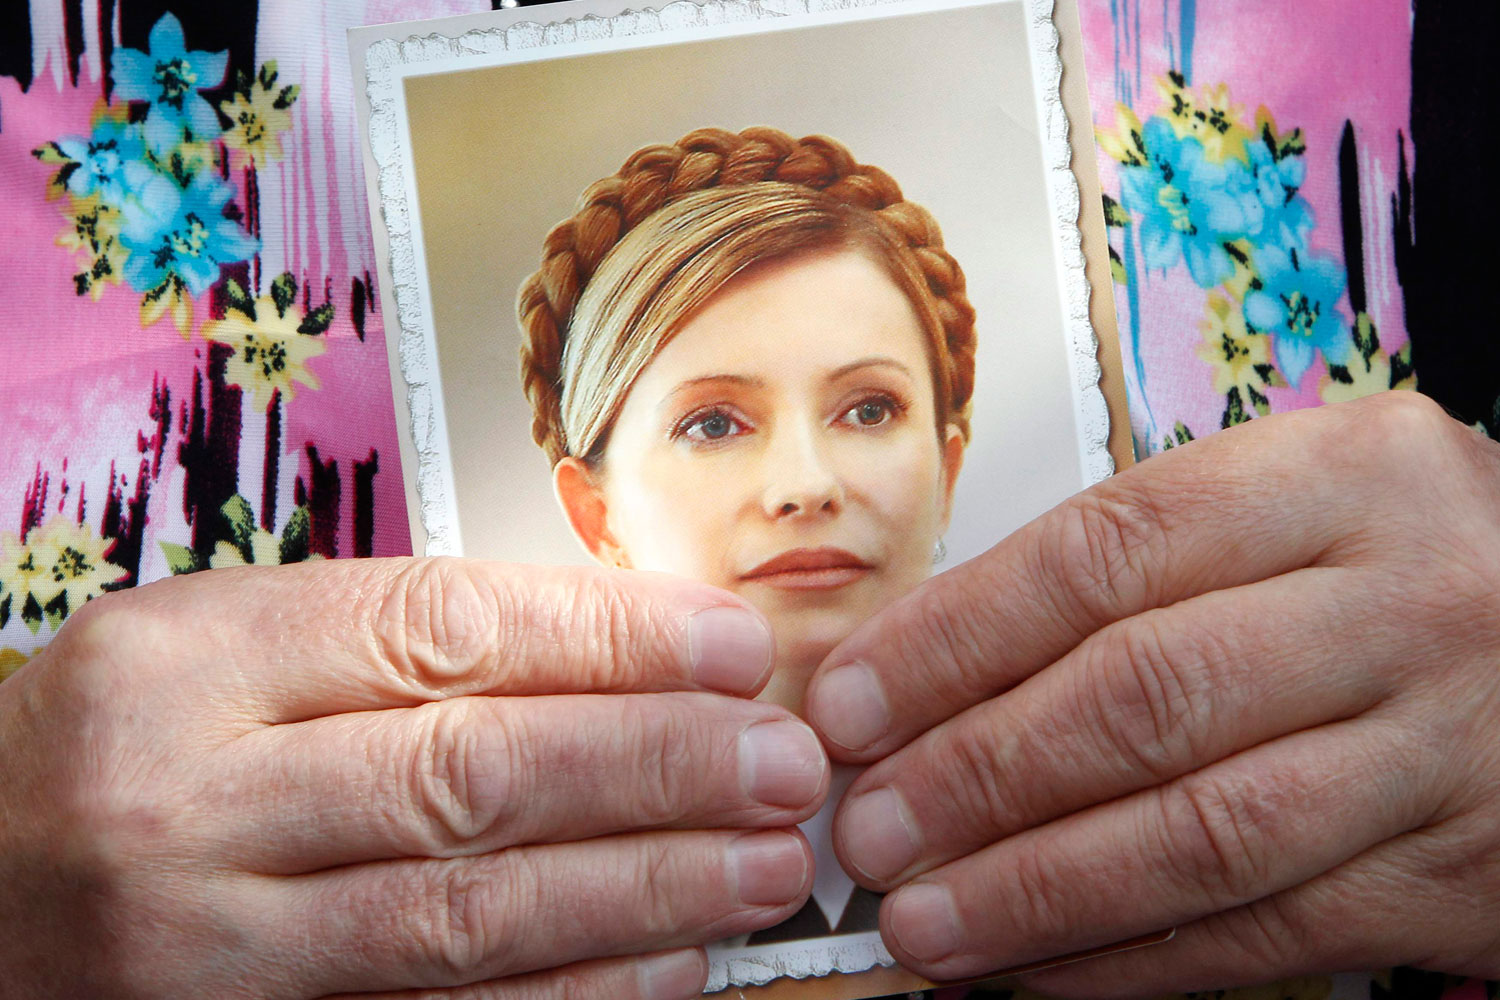 July 6, 2011. A supporter holds a portrait of Ukraine's former Prime Minister Yulia Tymoshenko during a session outside a court building in Kiev July 6, 2011.